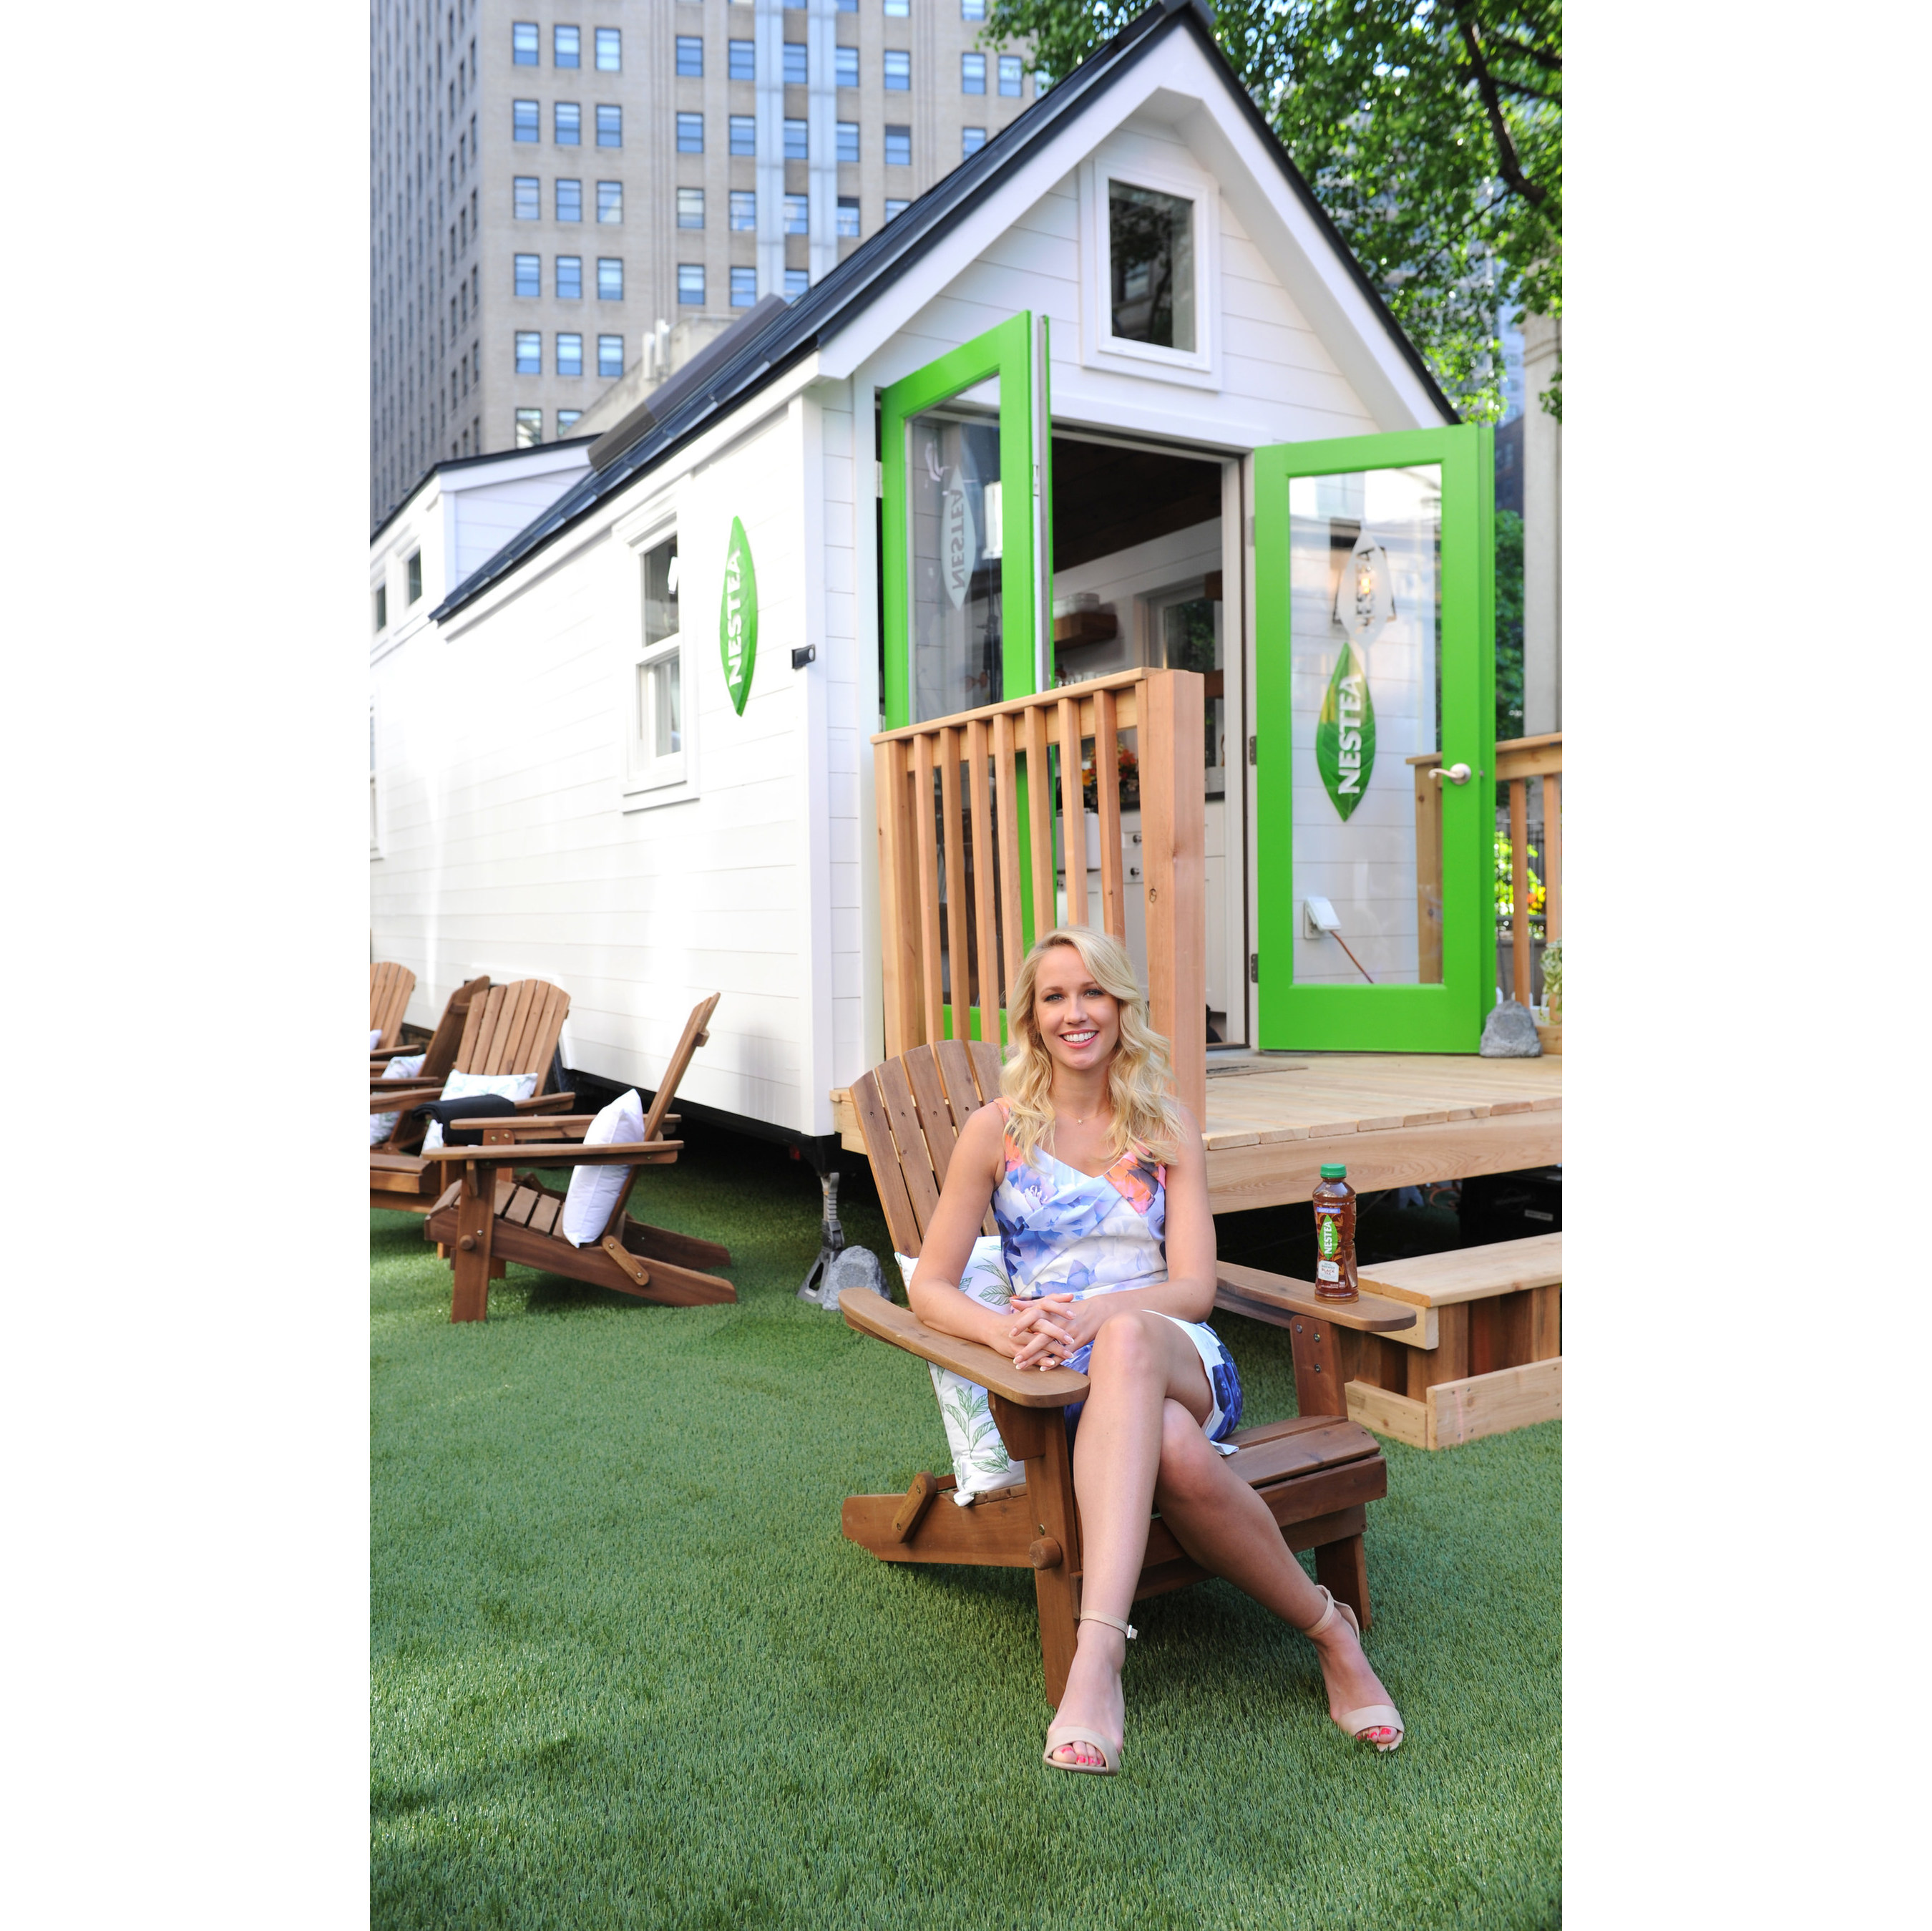 NEW YORK, NY - MAY 17: Actress Anna Camp launches the new NESTEA in Herald Square at the NESTEA Tiny House on May 17, 2017 in New York City. Designed in part by bloggers Southern Bite, Inspired by Charm, and Hapa Time, the NESTEA Tiny House is unveiled in Herald Square. (Photo by Craig Barritt/Getty Images) (PRNewsfoto/NESTEA)